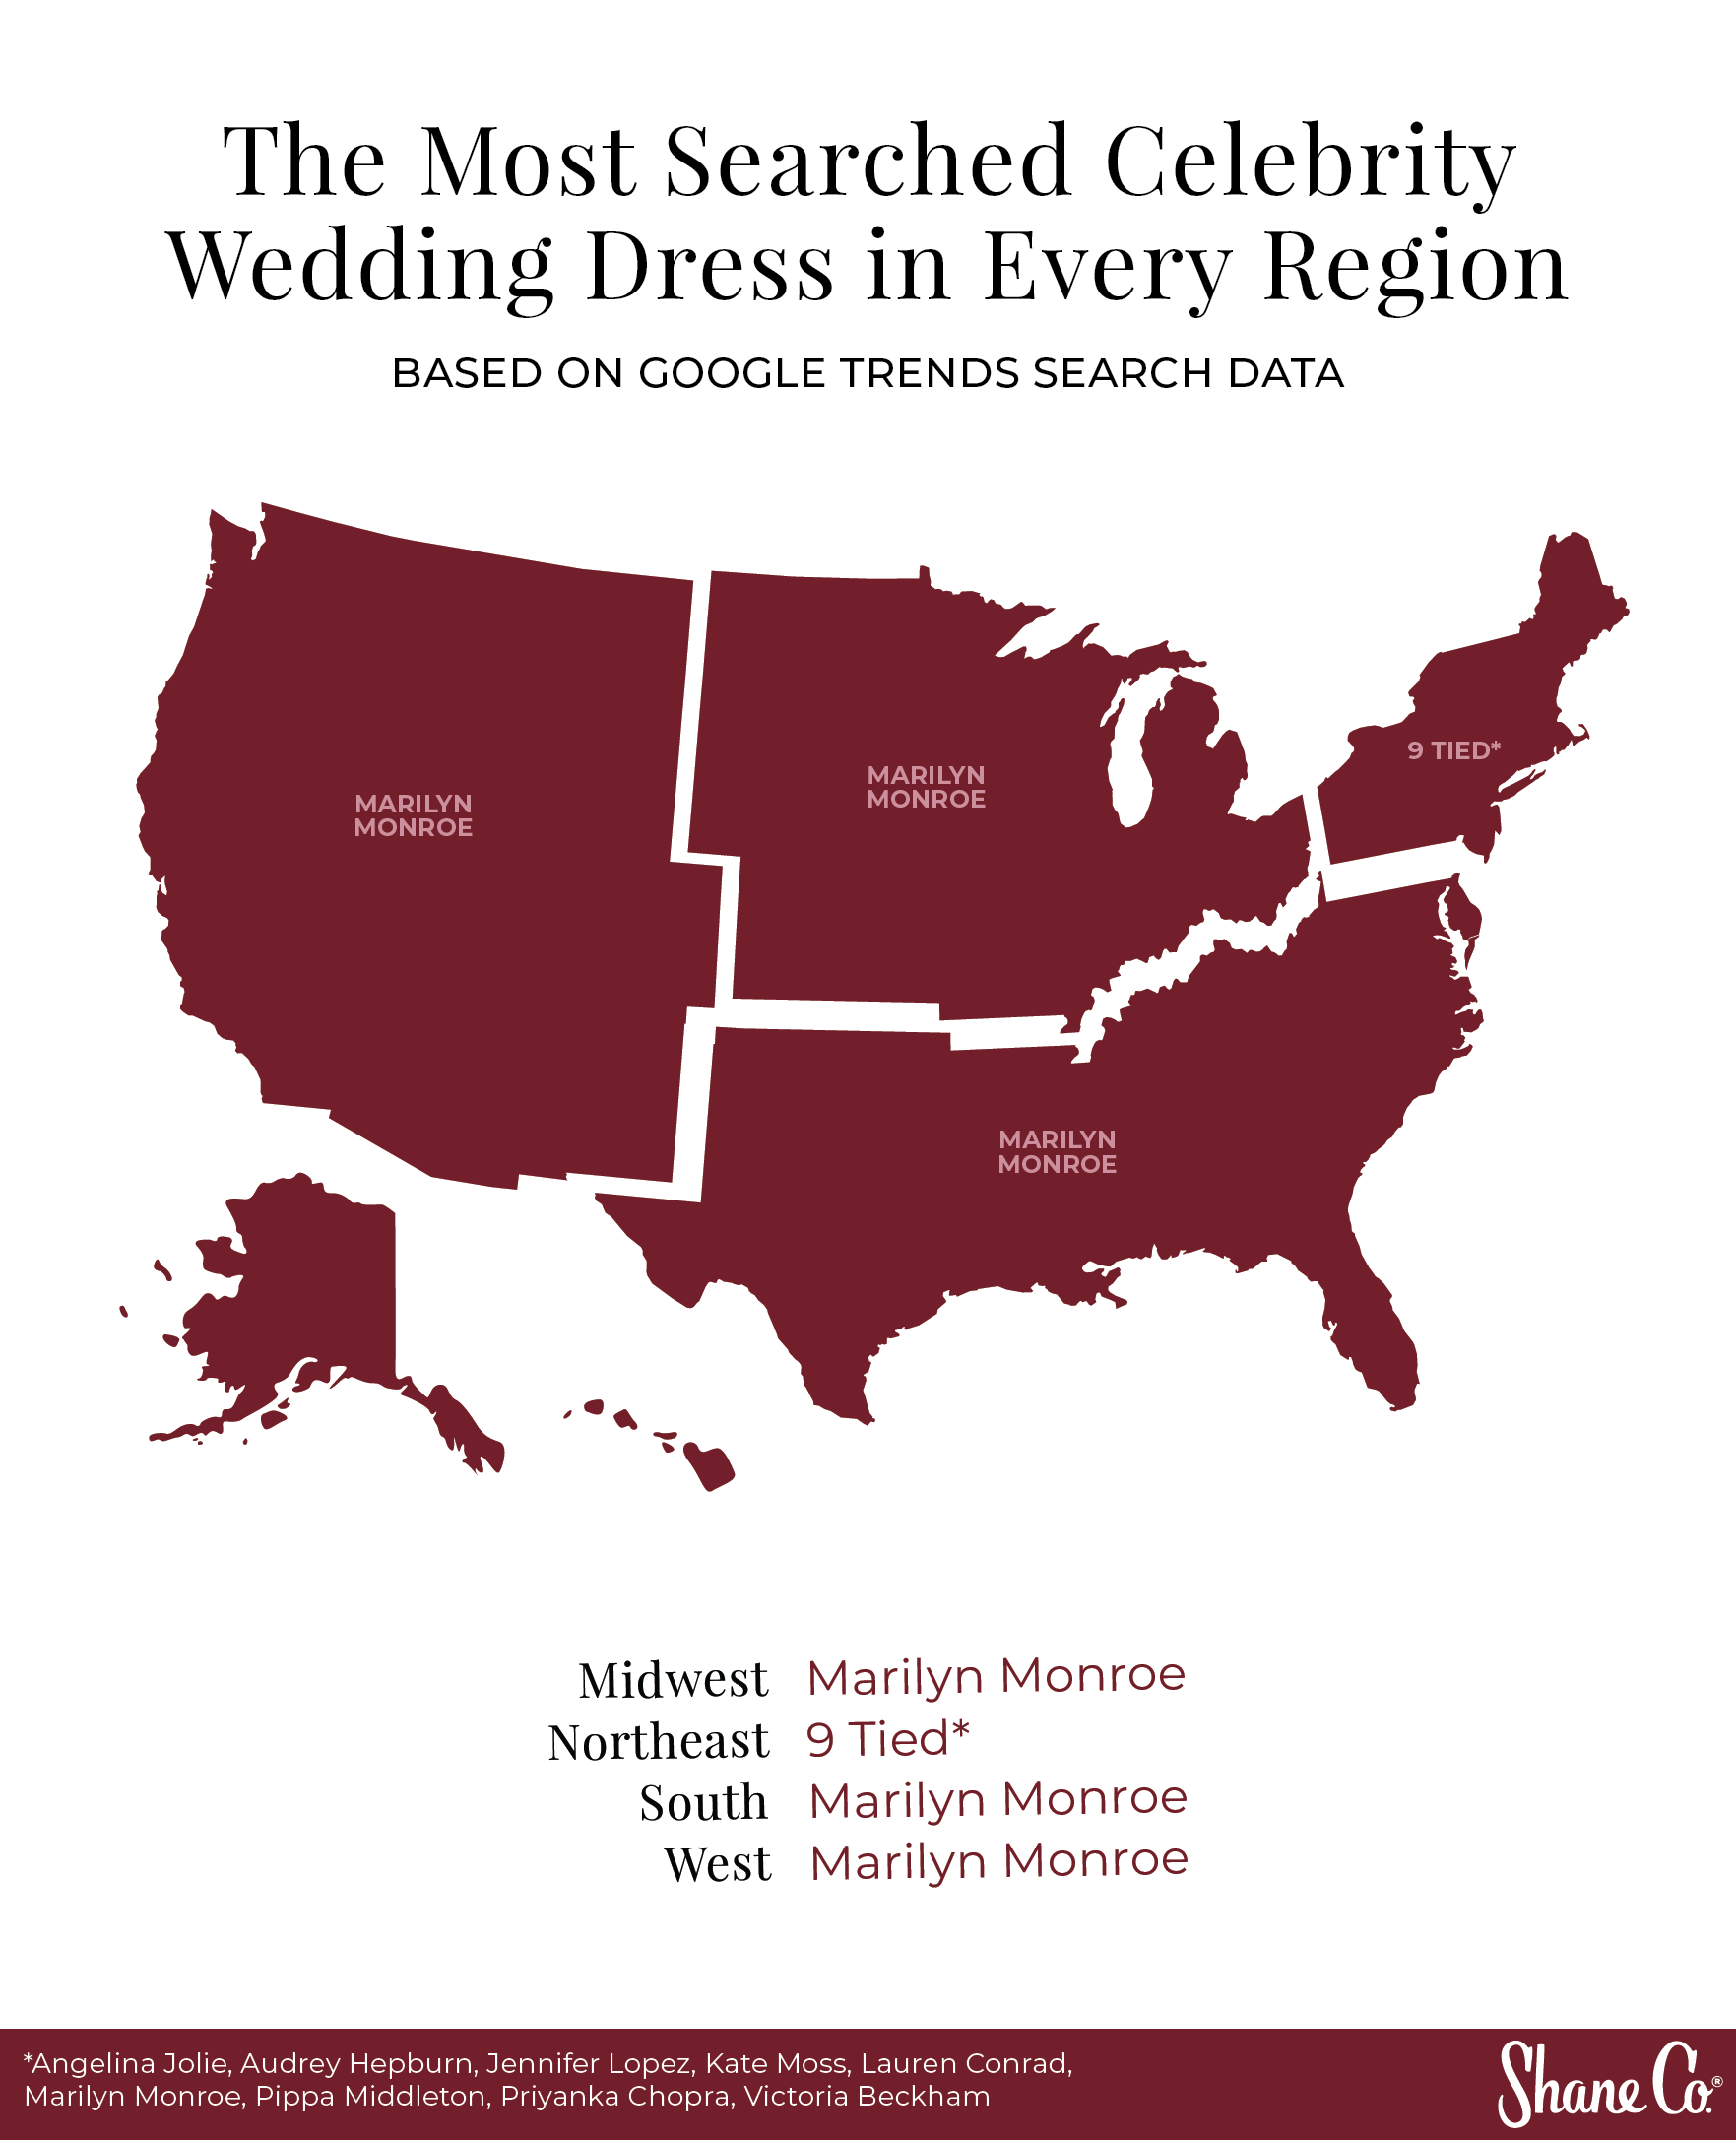 US map showing the most searched celebrity wedding dress per region